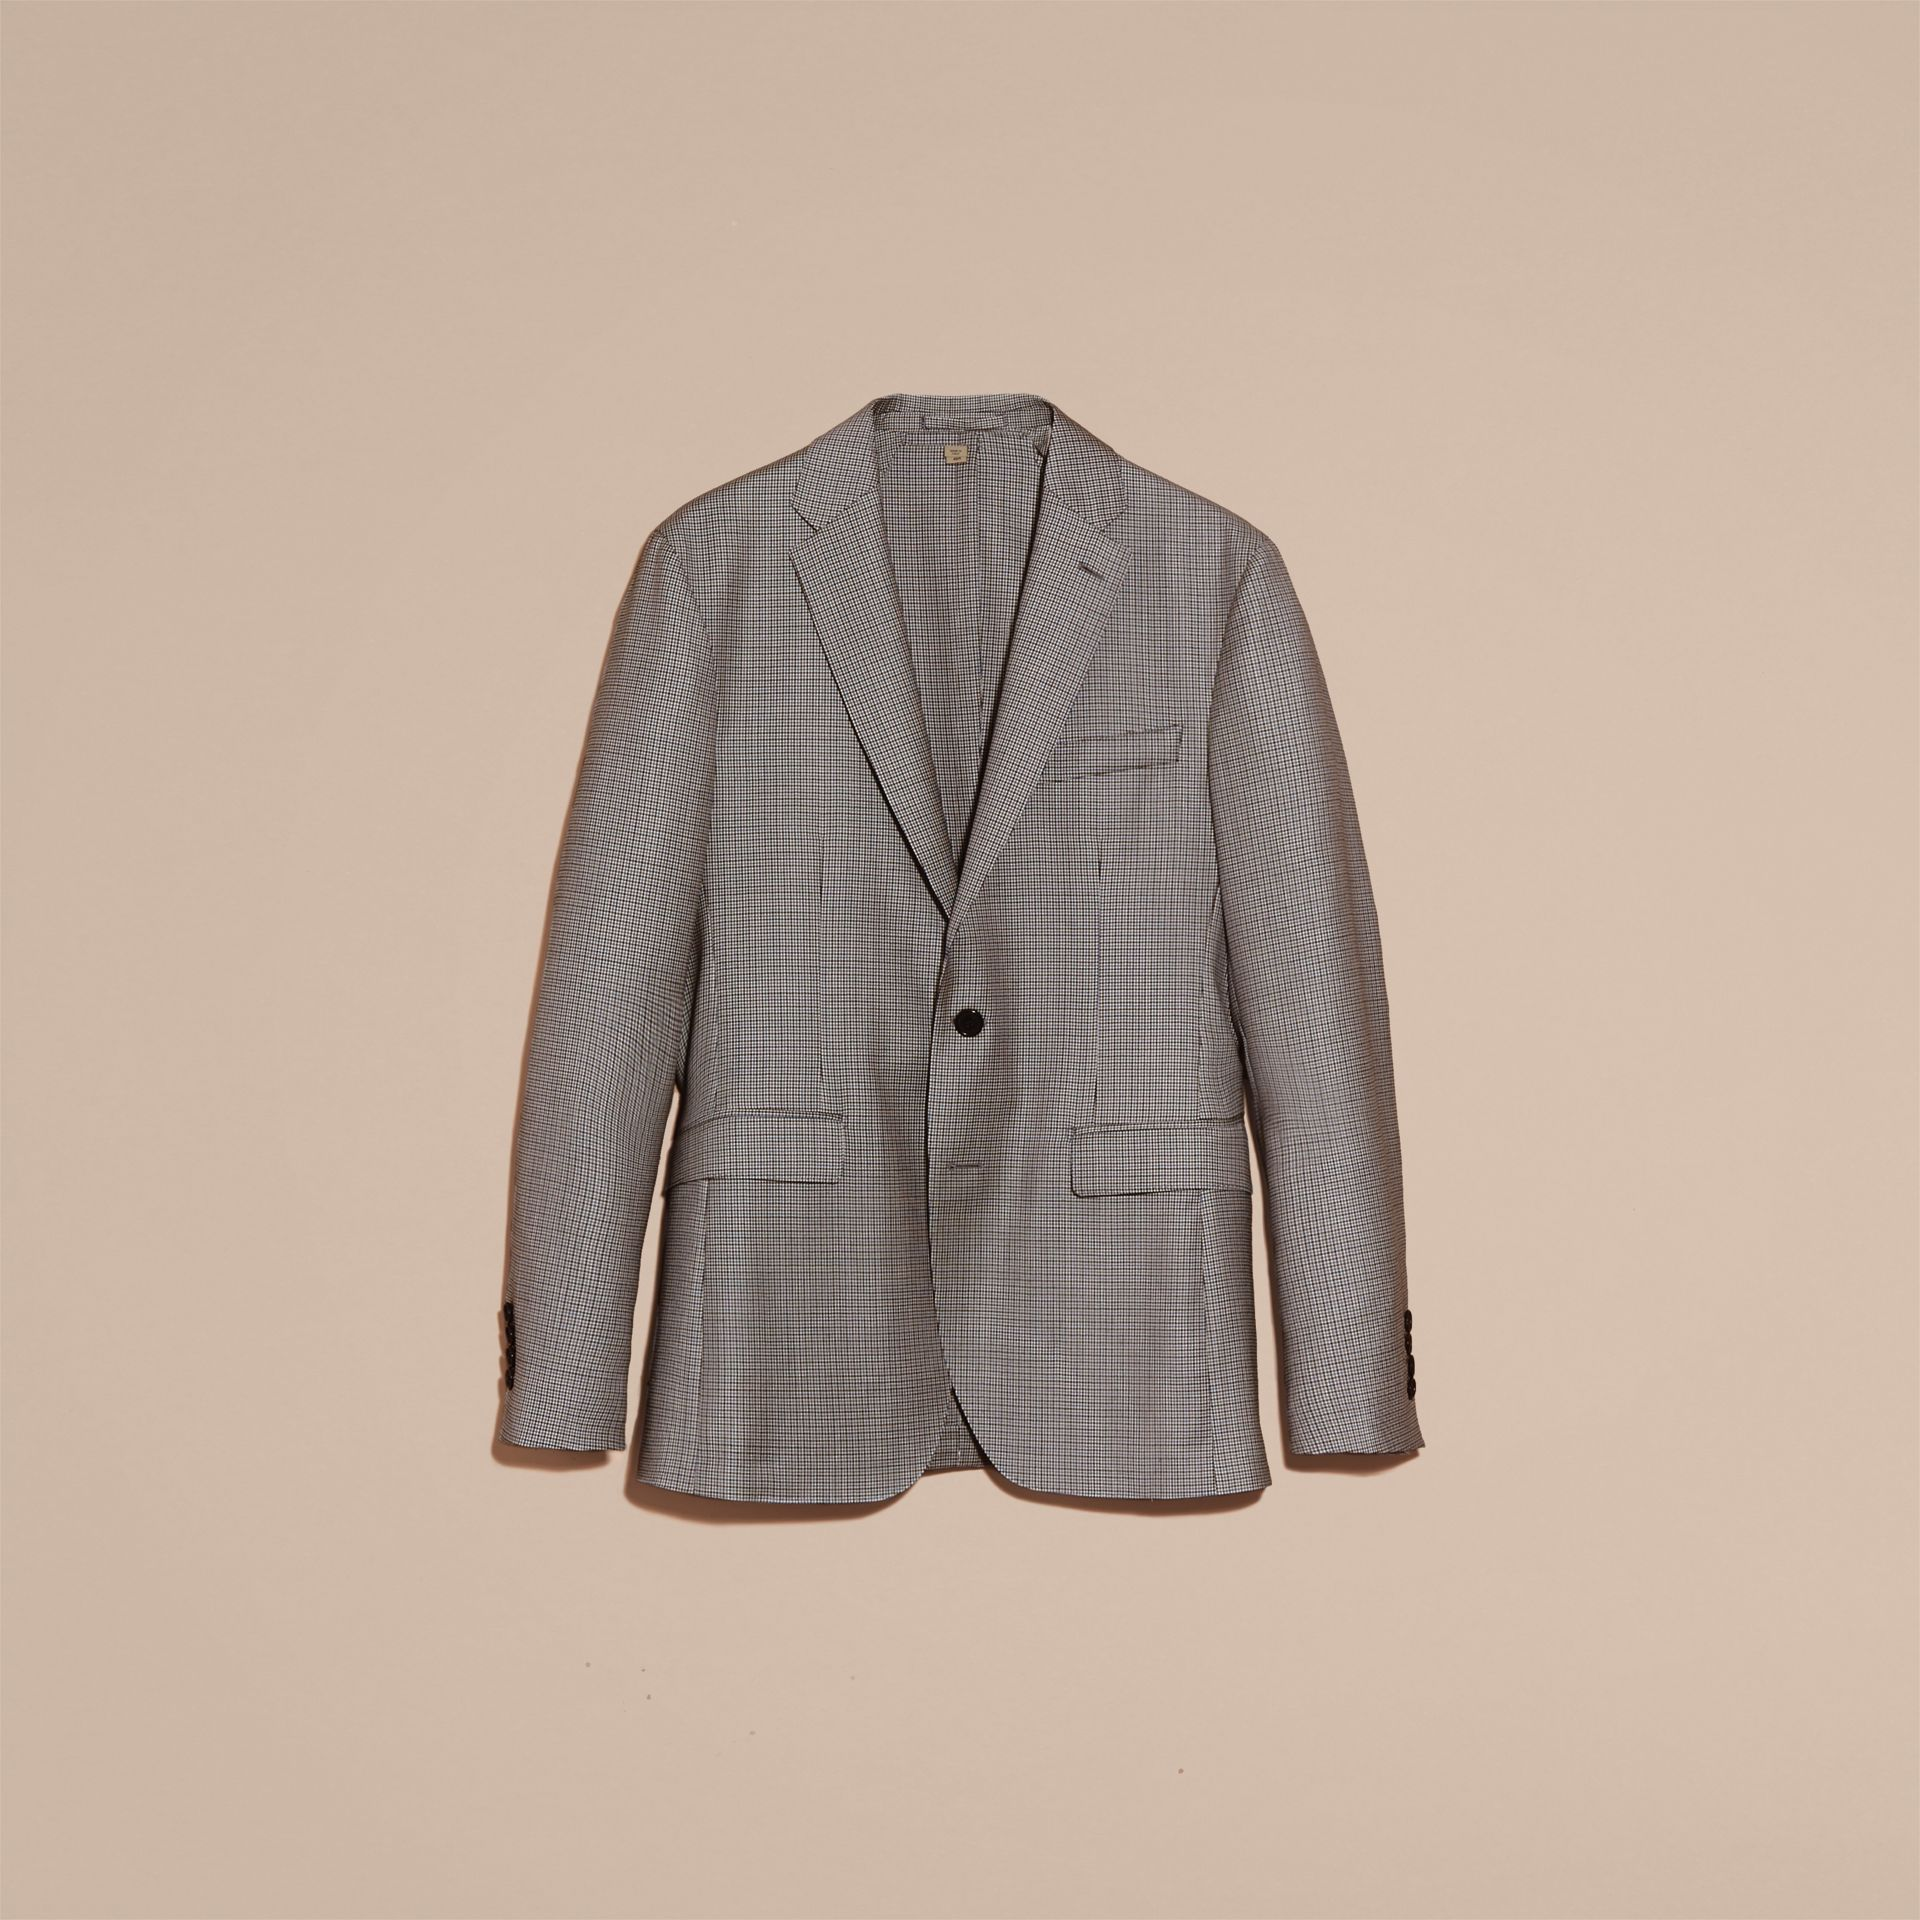 Slim Fit Houndstooth Wool Tailored Jacket - Men | Burberry - gallery image 4